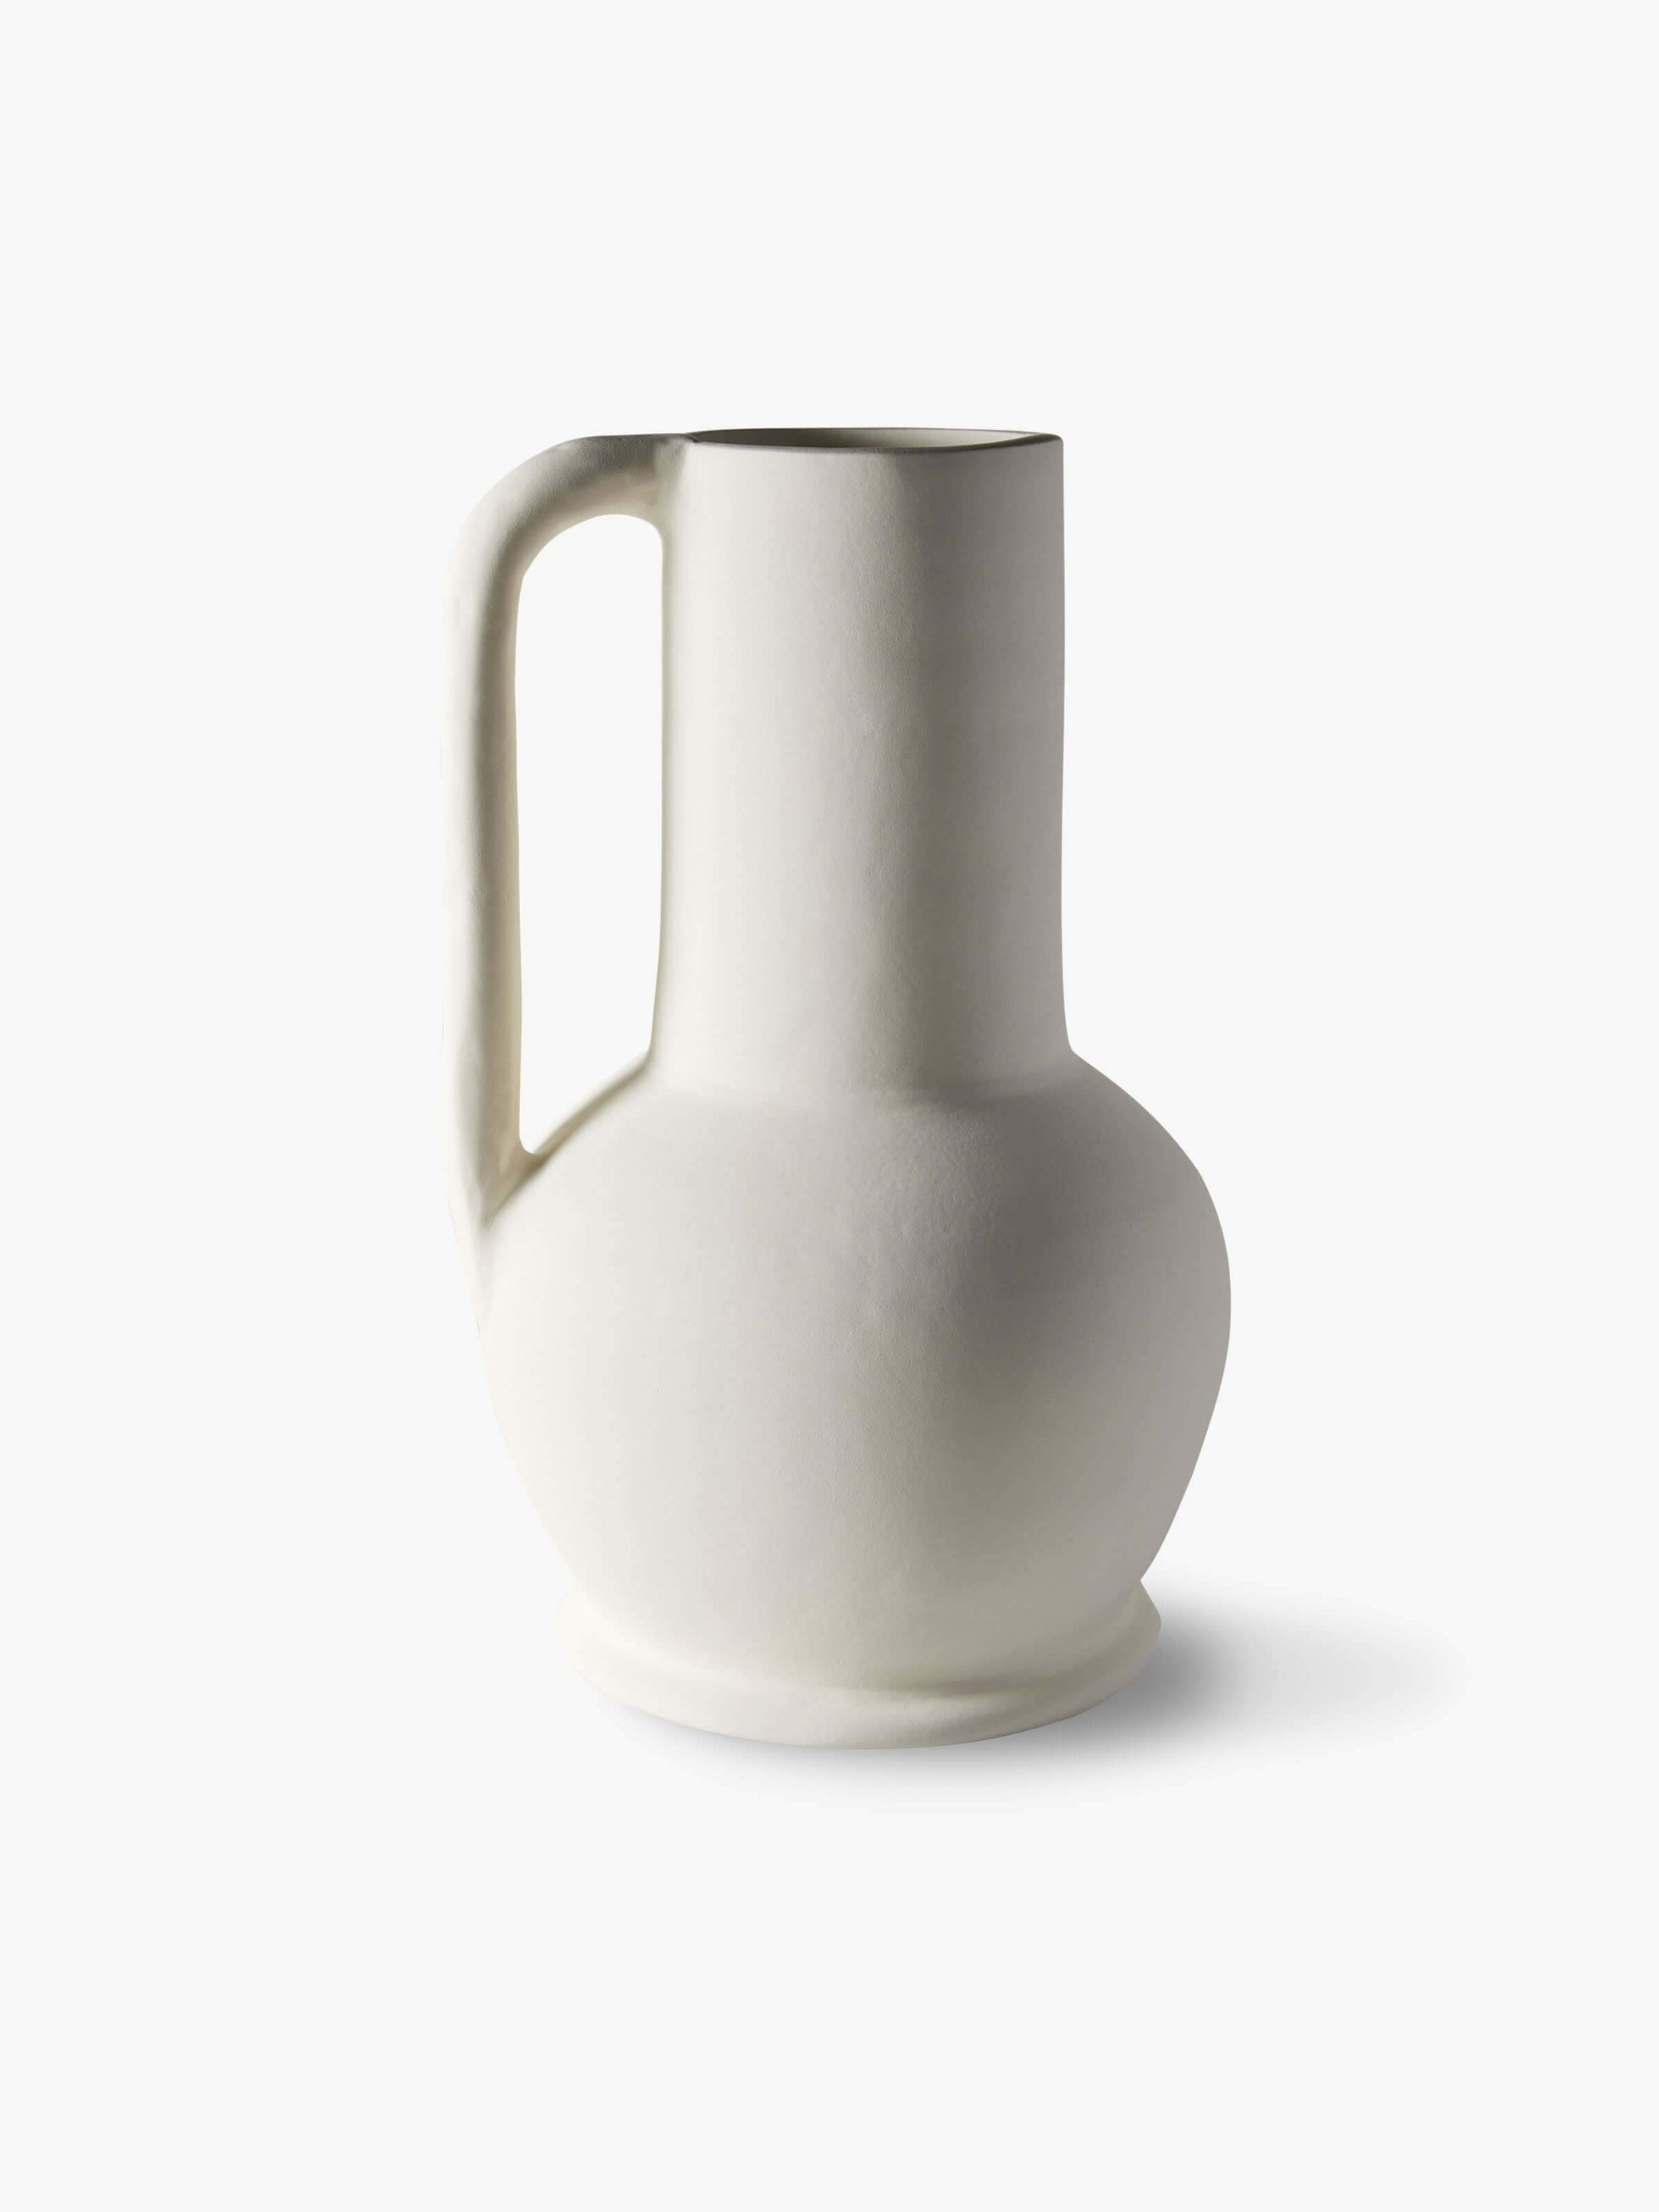 Artemis Vessel - Chalk Homewares 2020